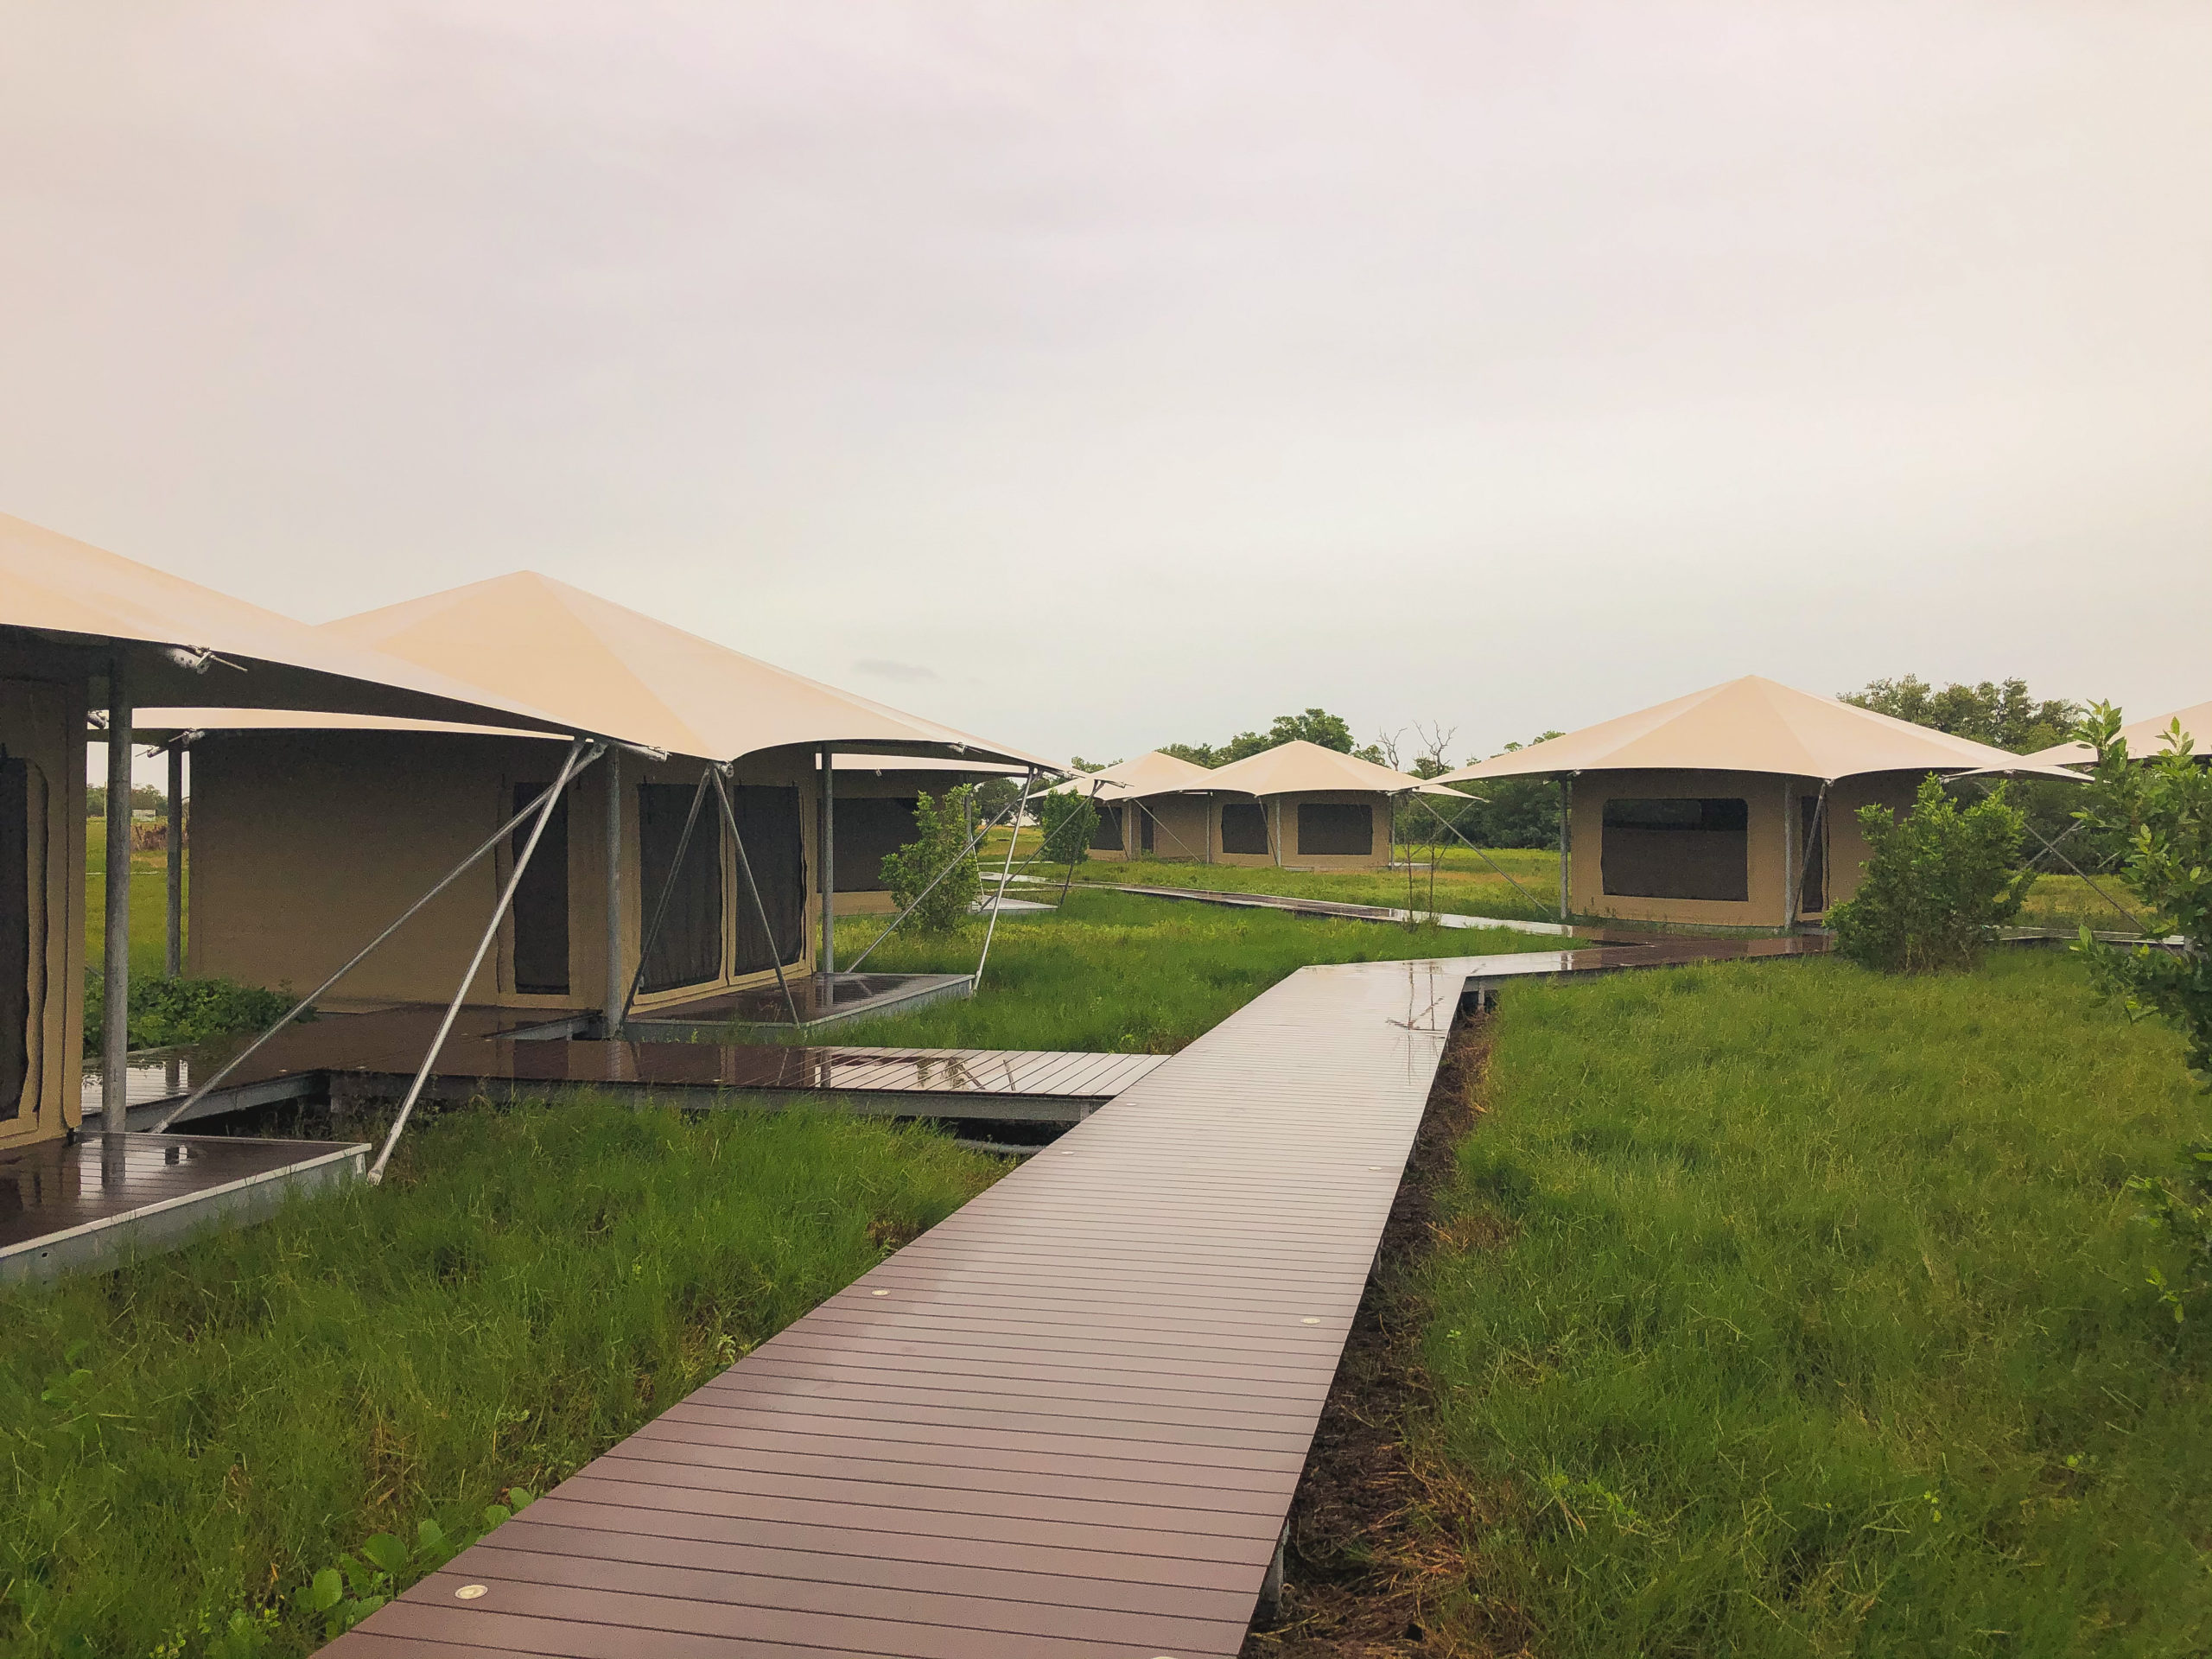 Glamping safari tents of Everglades National Park